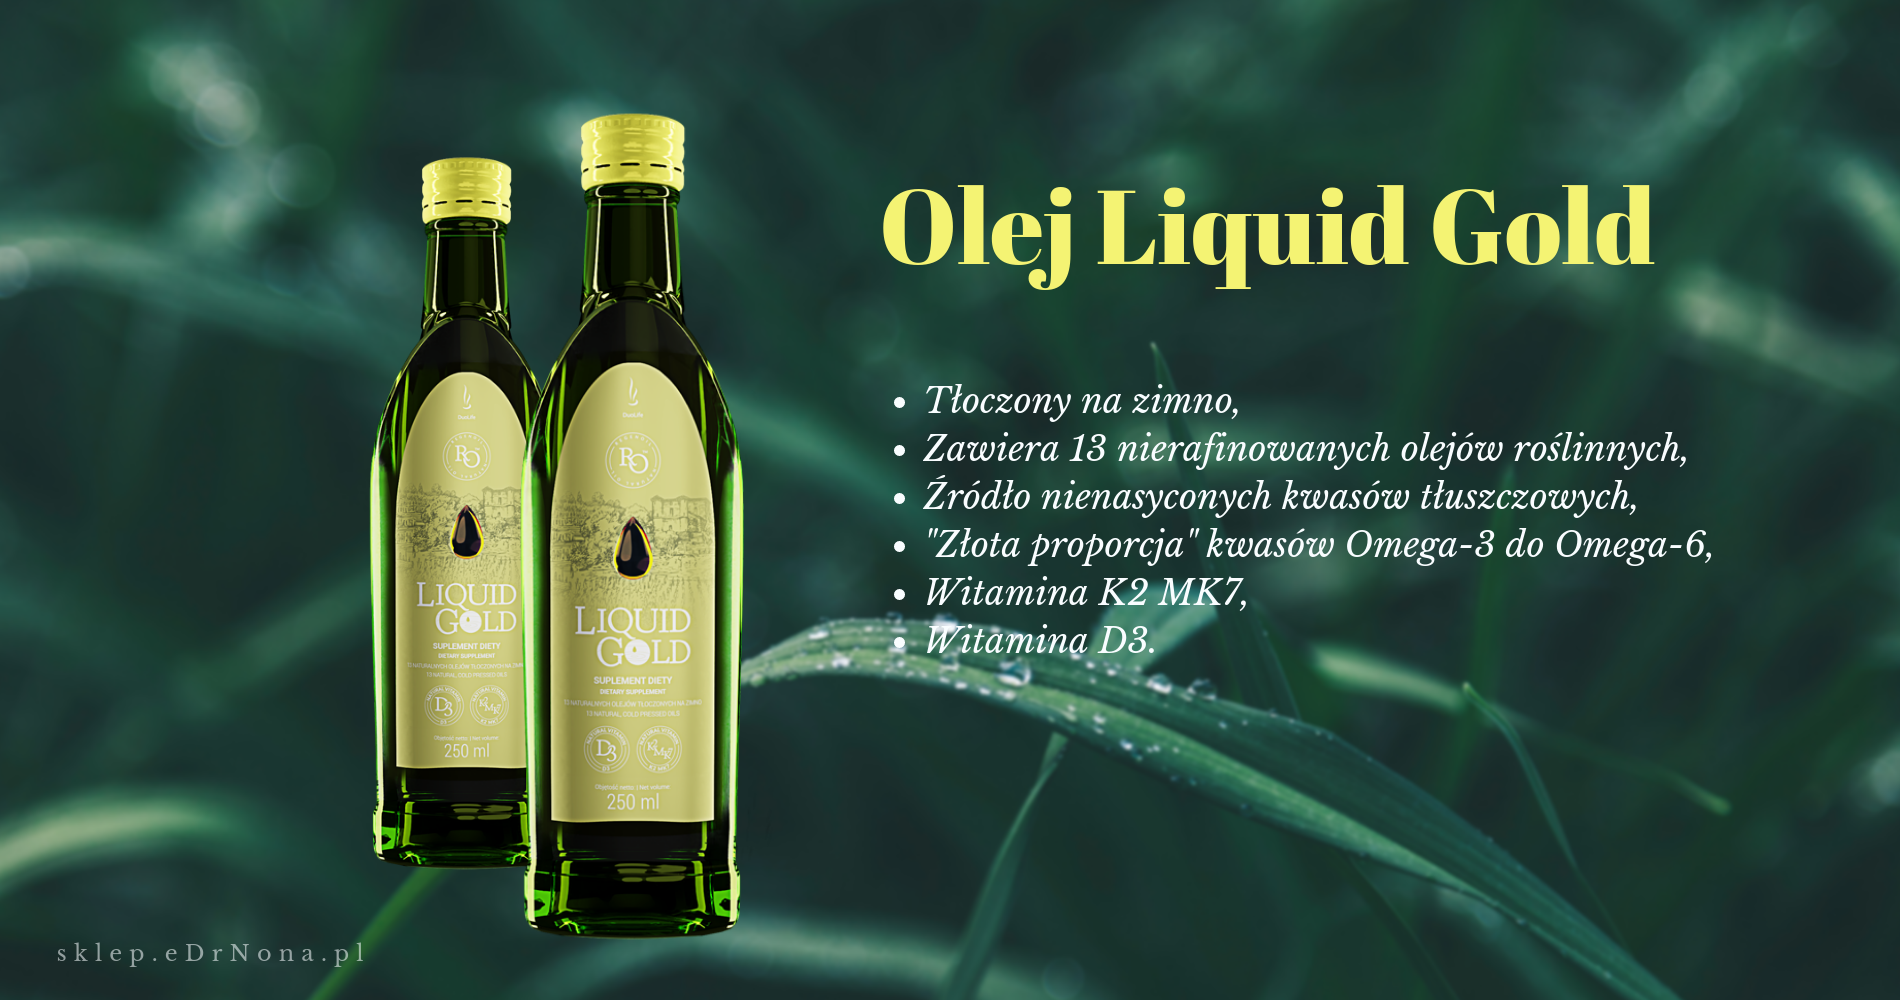 Olej liquid gold duolife dr nona